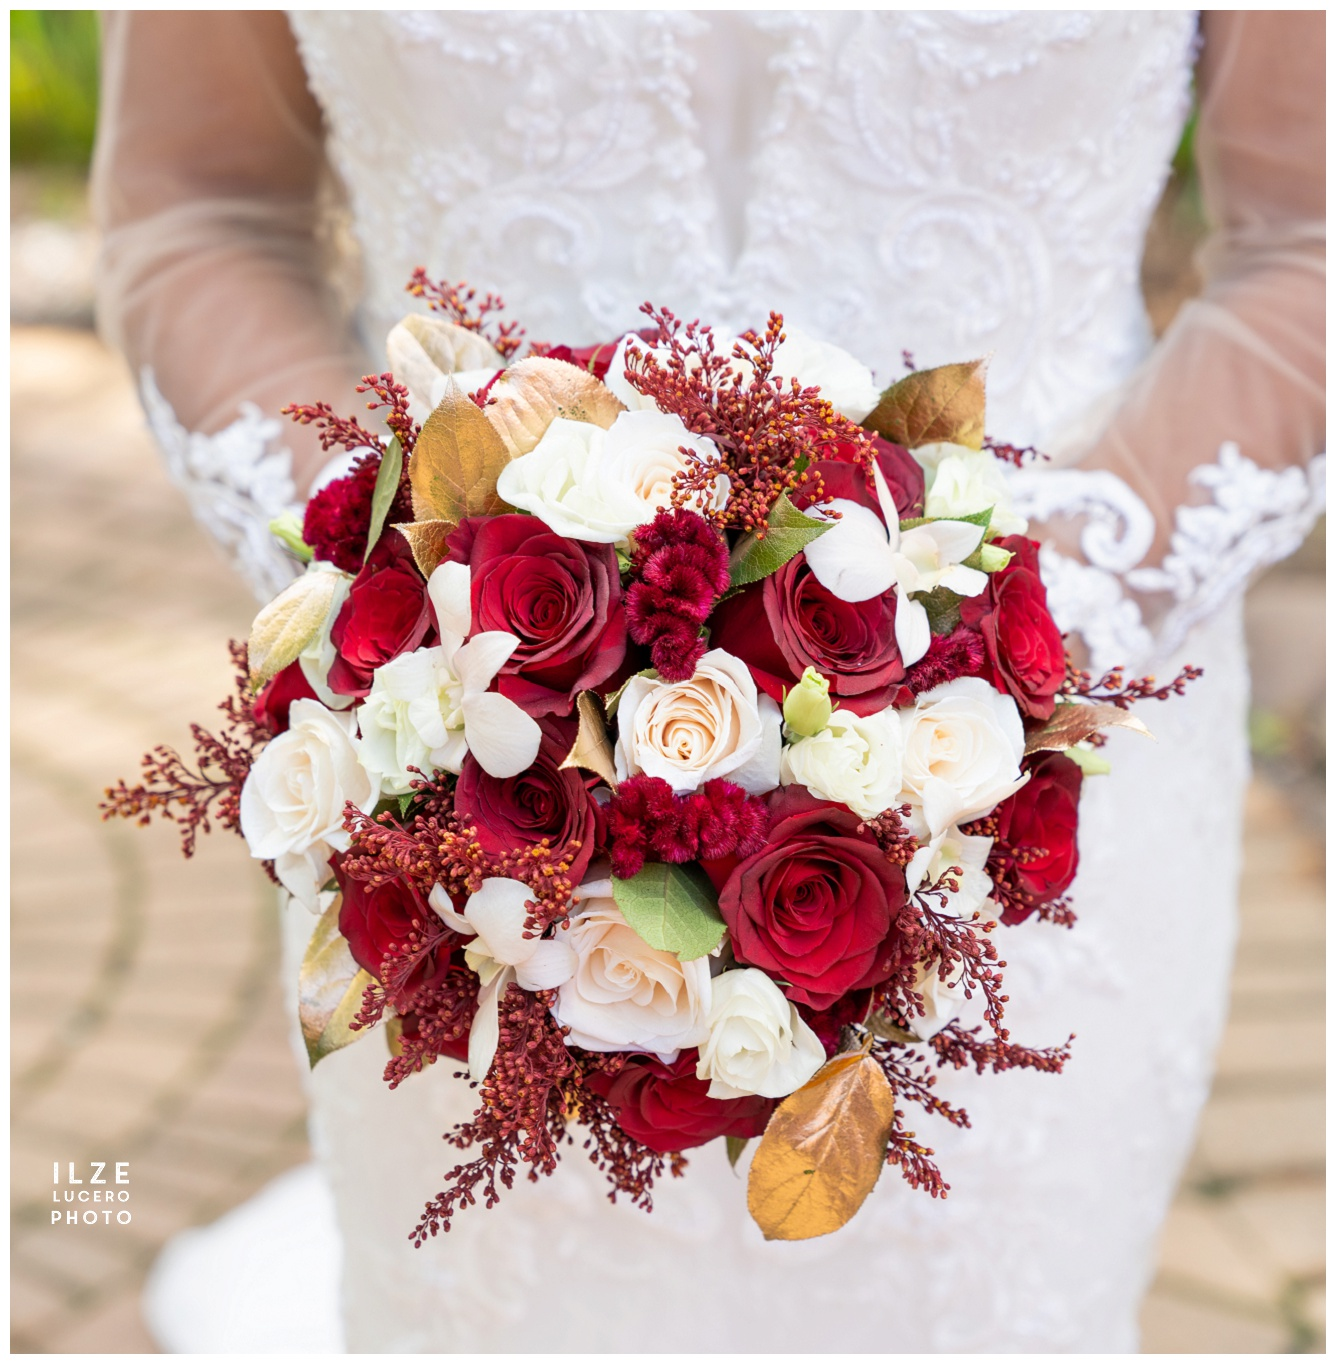 Classic rose wedding bouquet -  red, white and gold